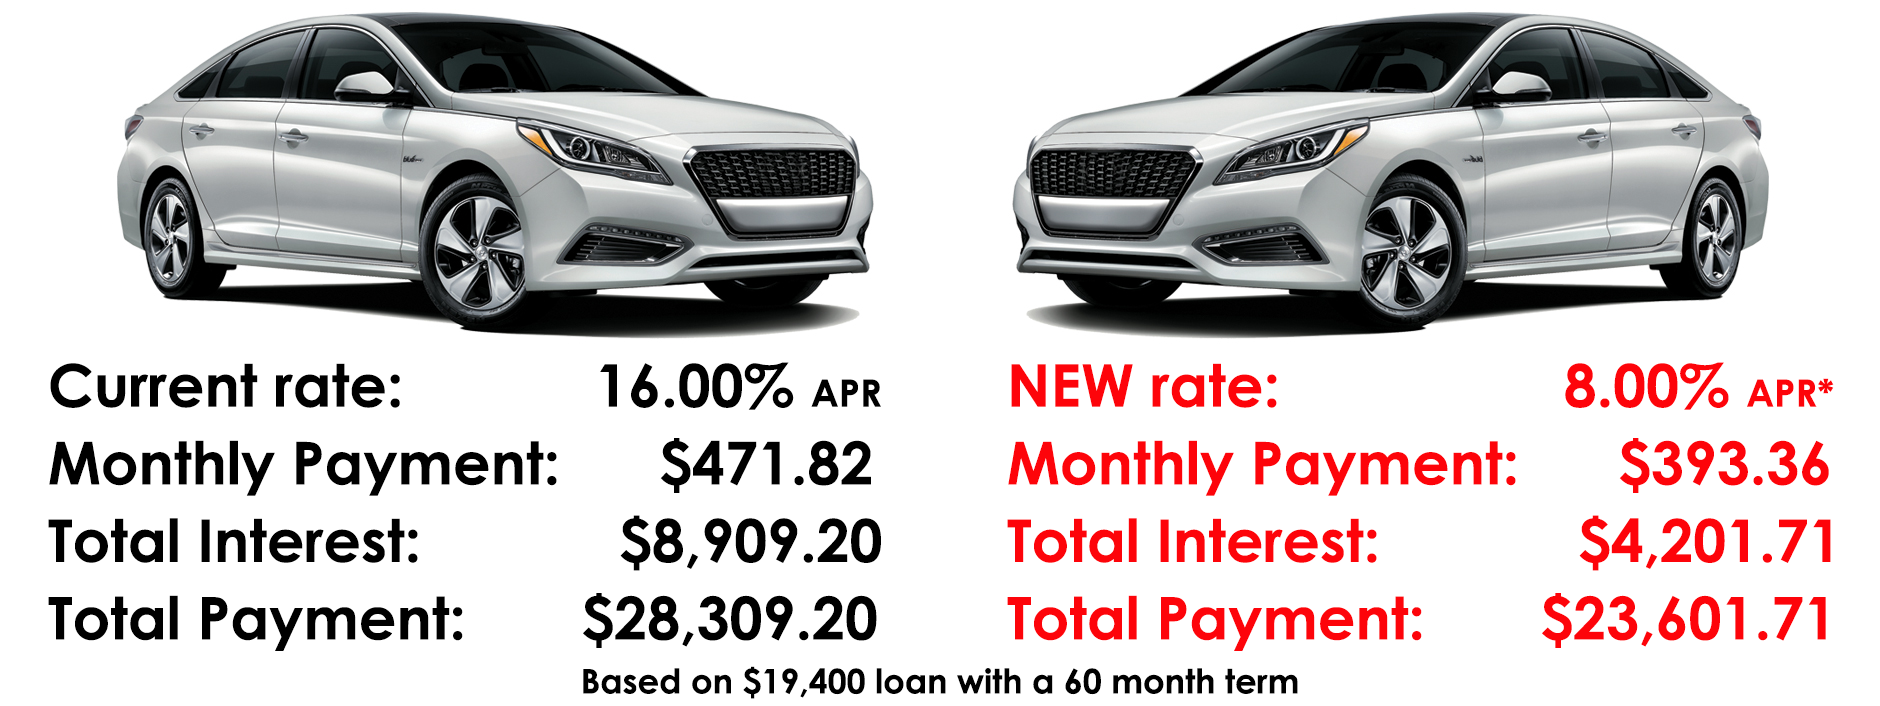 How To Calculate Apr On A Car Loan >> Industrial Federal Credit Union Mortgagesifcu